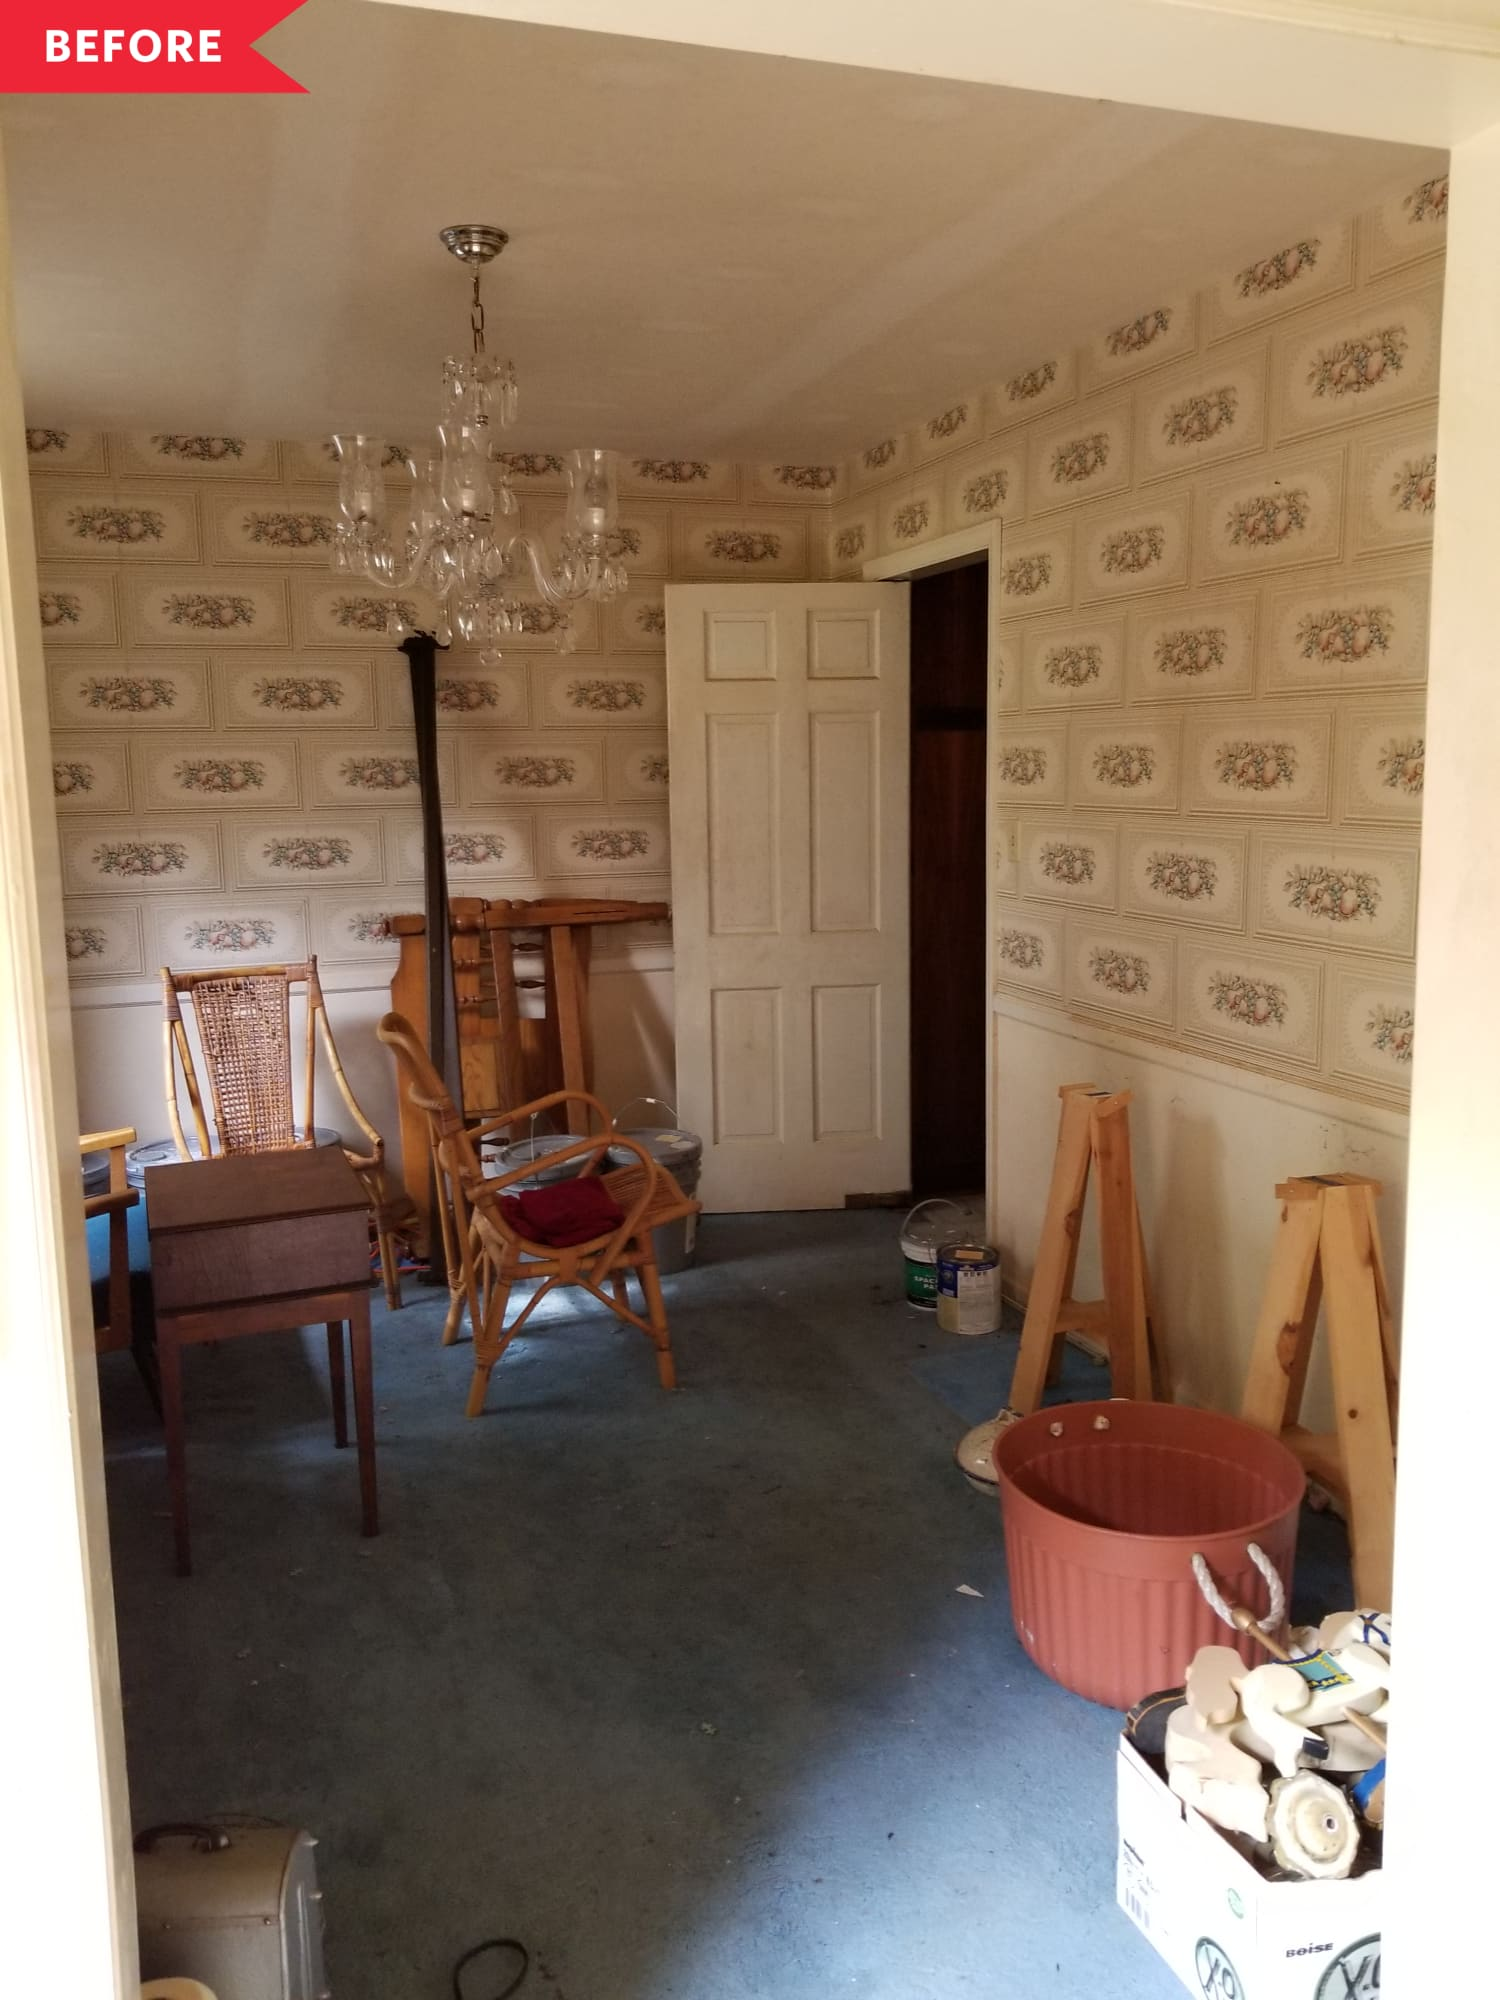 Before & After: The Dining Room in This Once-Abandoned House Is Now Indistinguishable